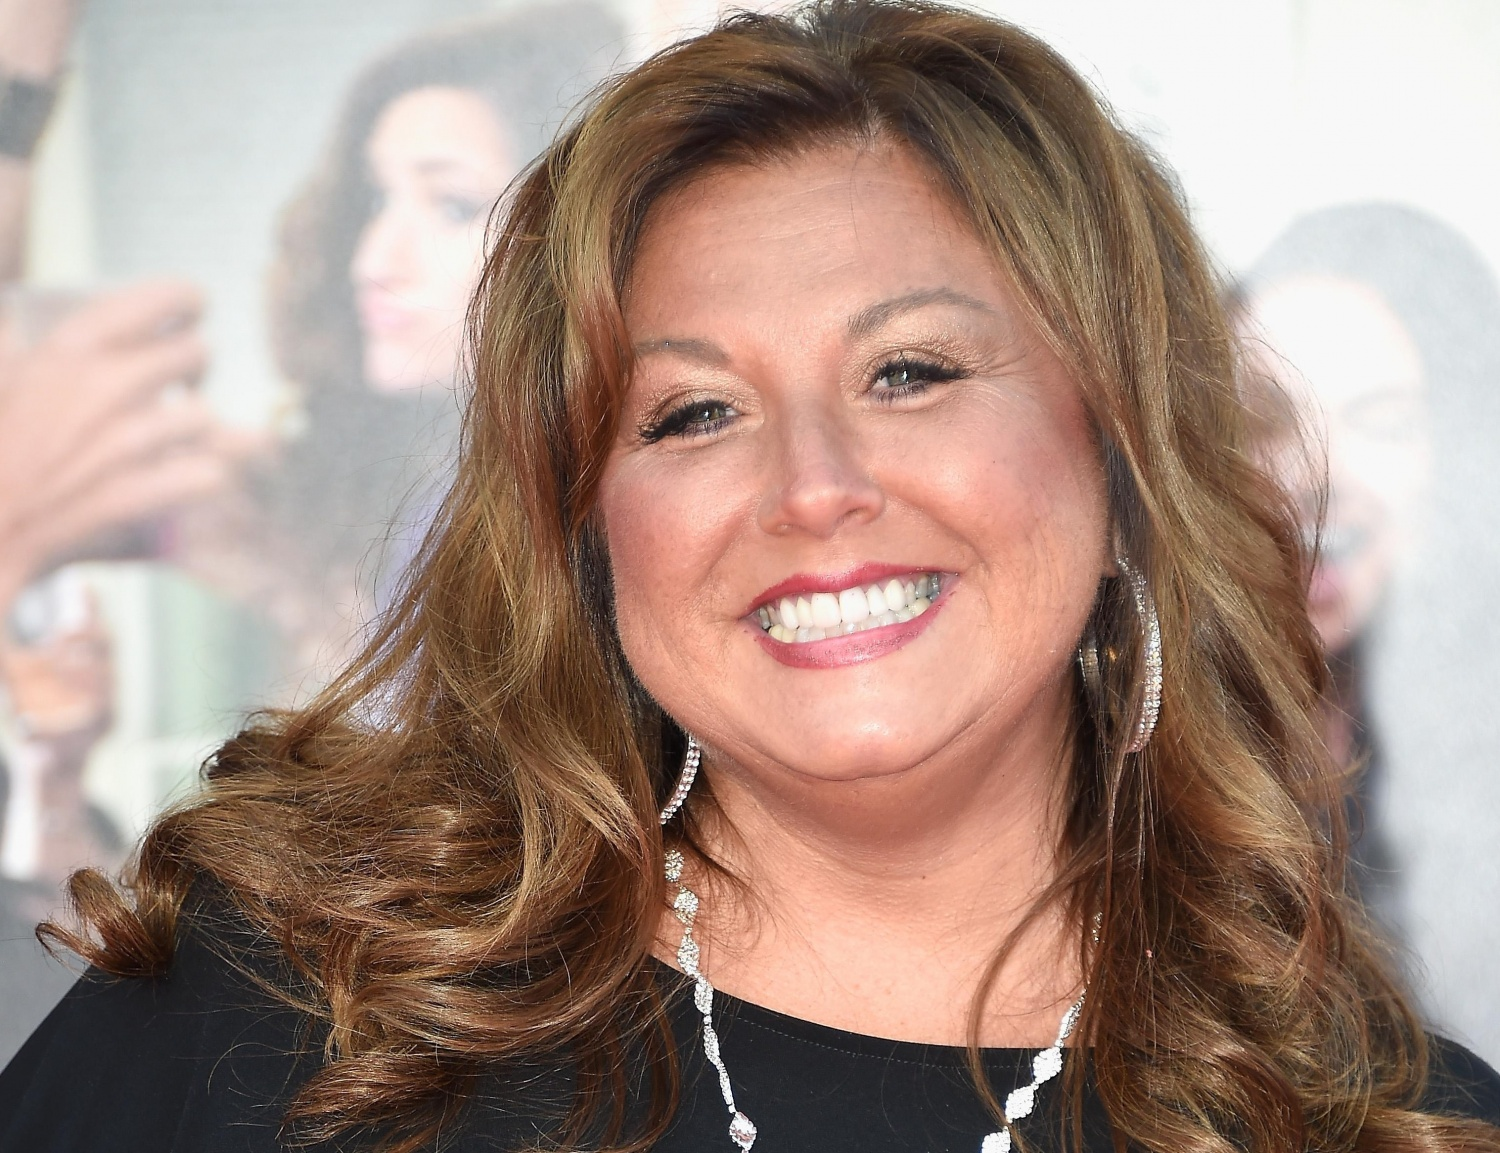 Abby Lee Miller Has Been Diagnosed with Non-Hodgkin's Lymphoma, Doctor Says